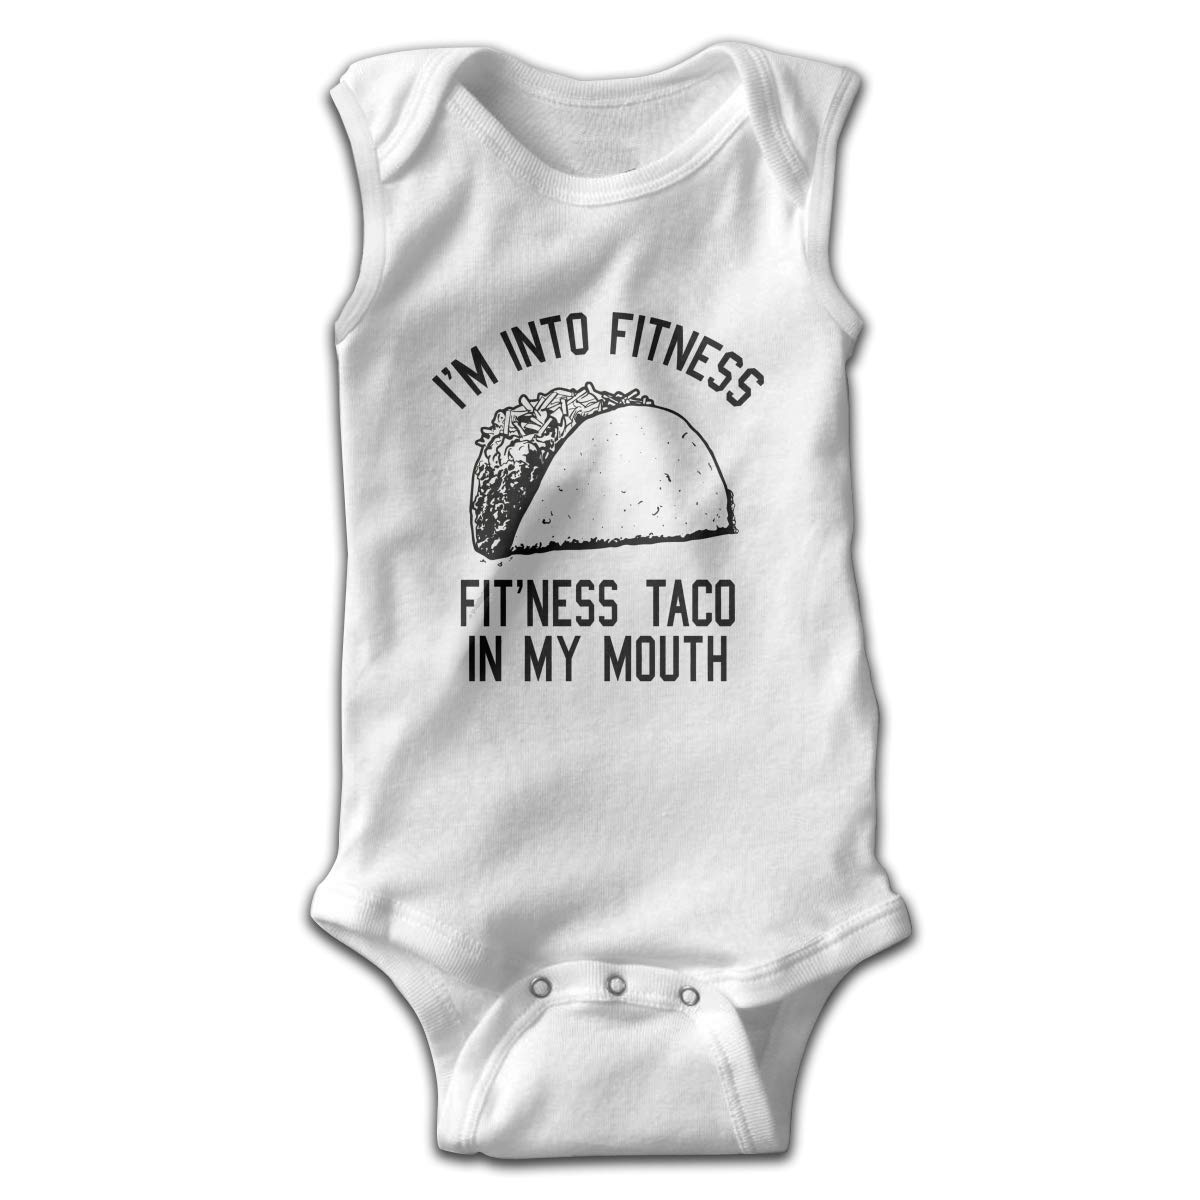 Efbj Toddler Baby Boys Rompers Sleeveless Cotton Jumpsuit,Im Into Fitness Outfit Autumn Pajamas